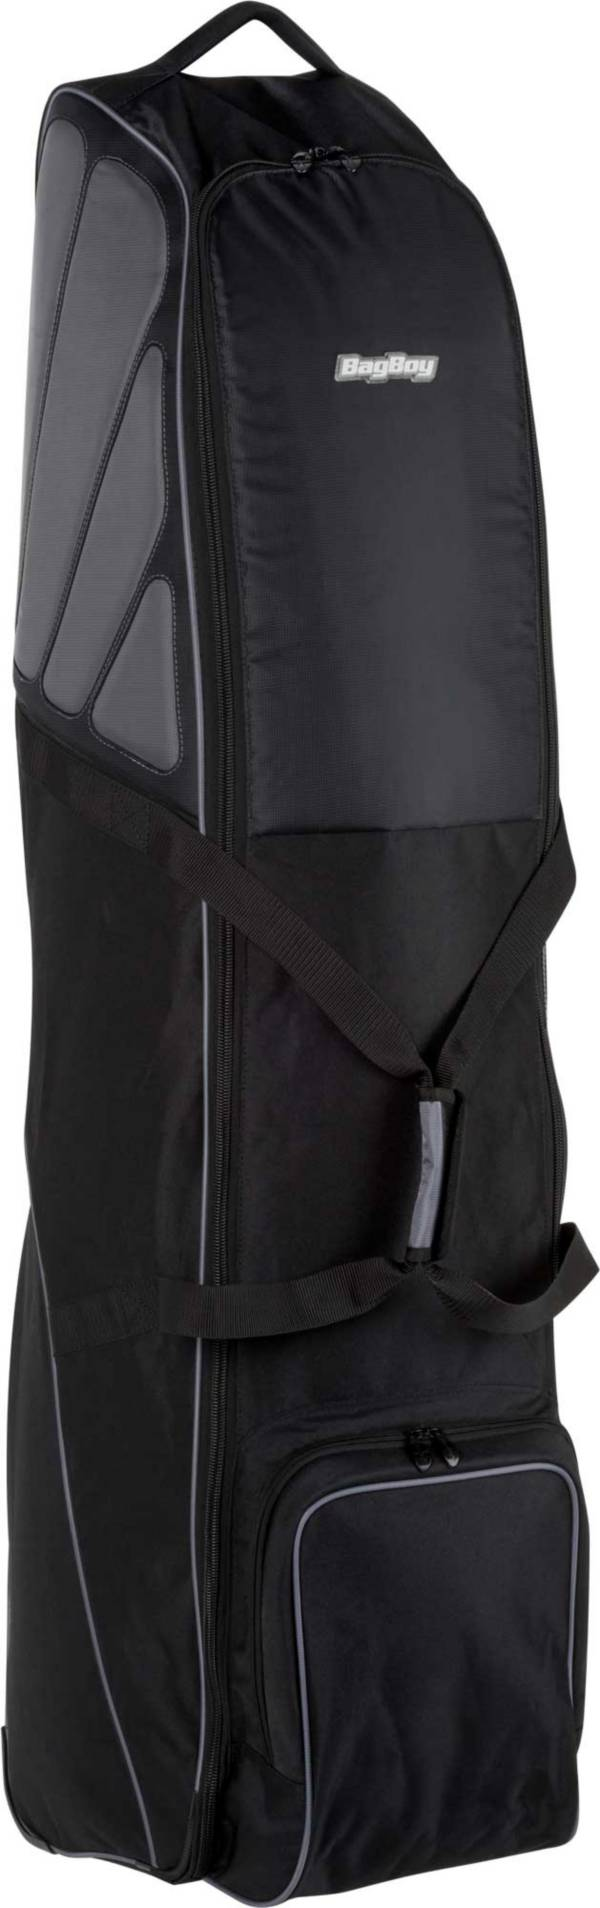 Bag Boy T-650 Travel Cover product image